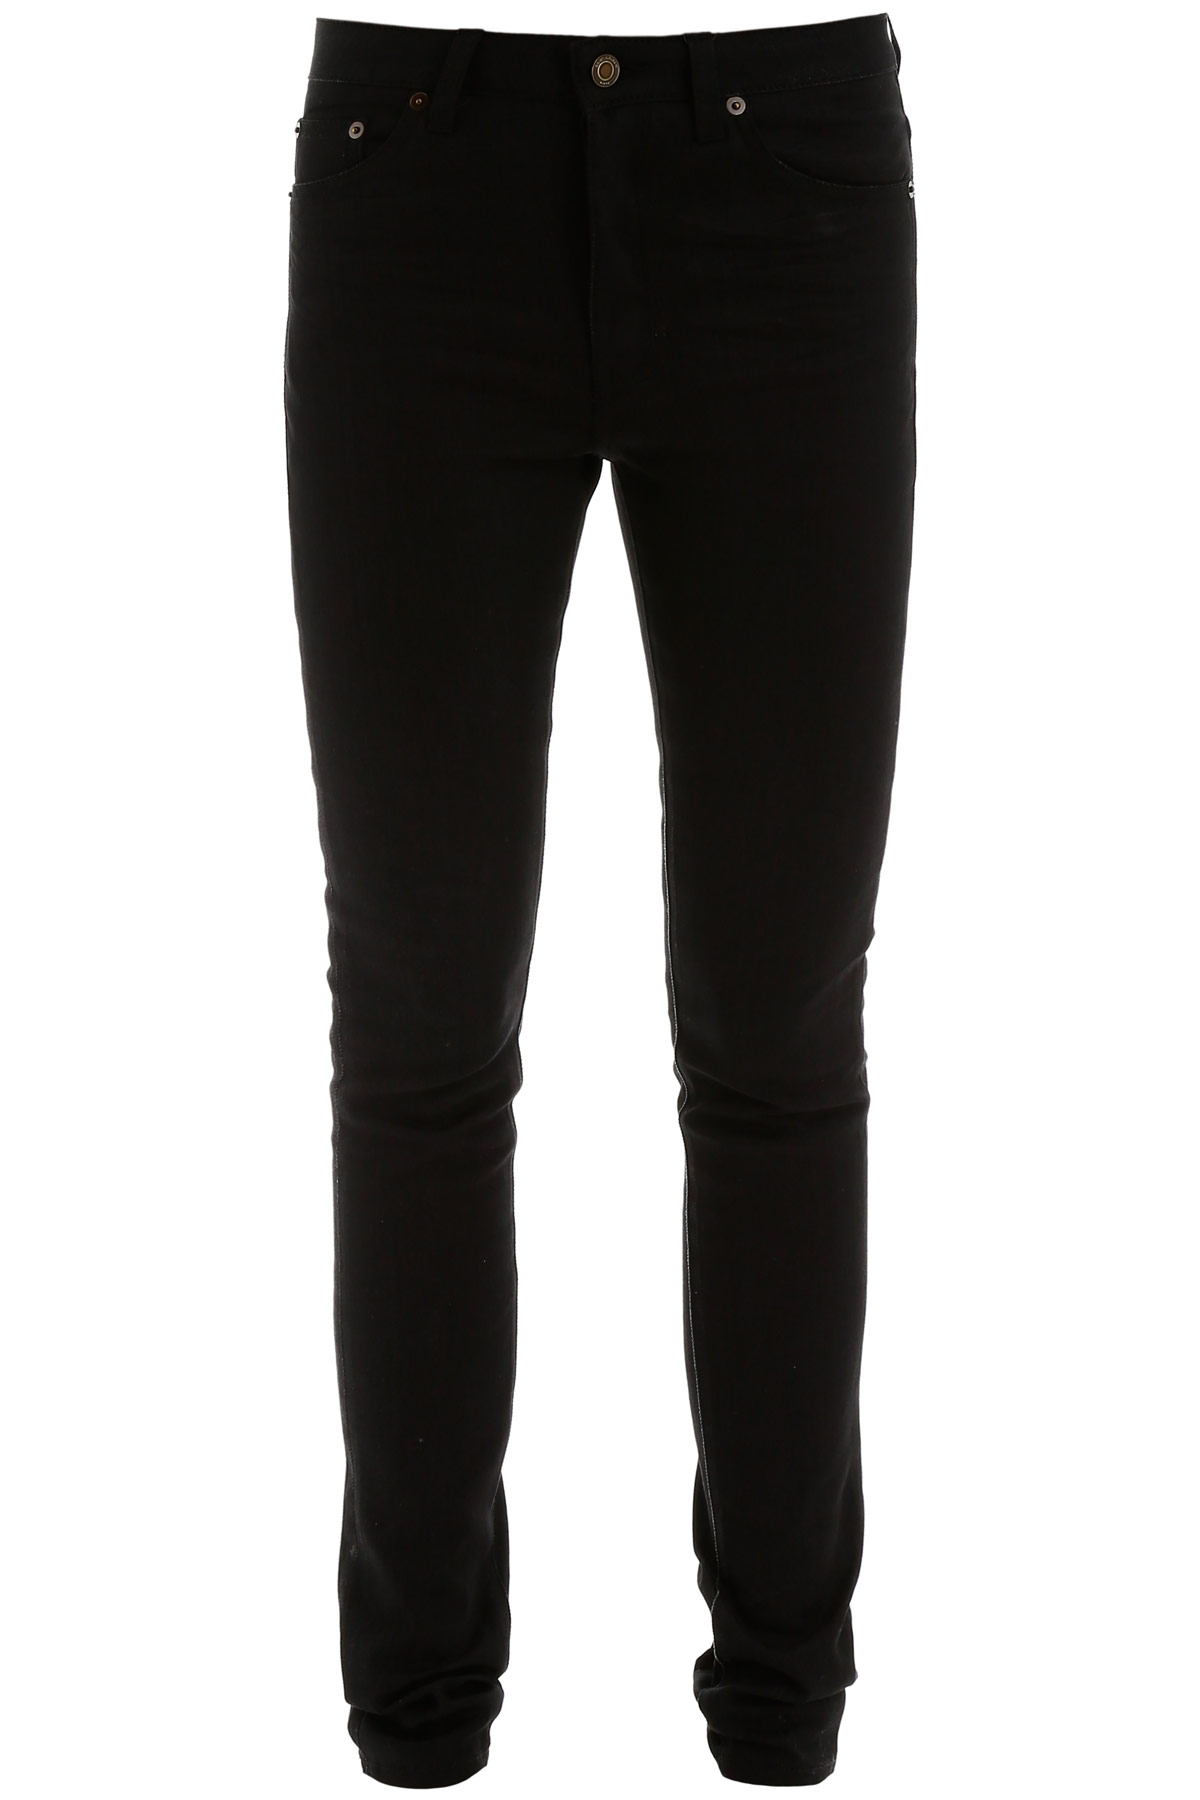 SAINT LAURENT SKINNY JEANS 29 Black Cotton, Denim